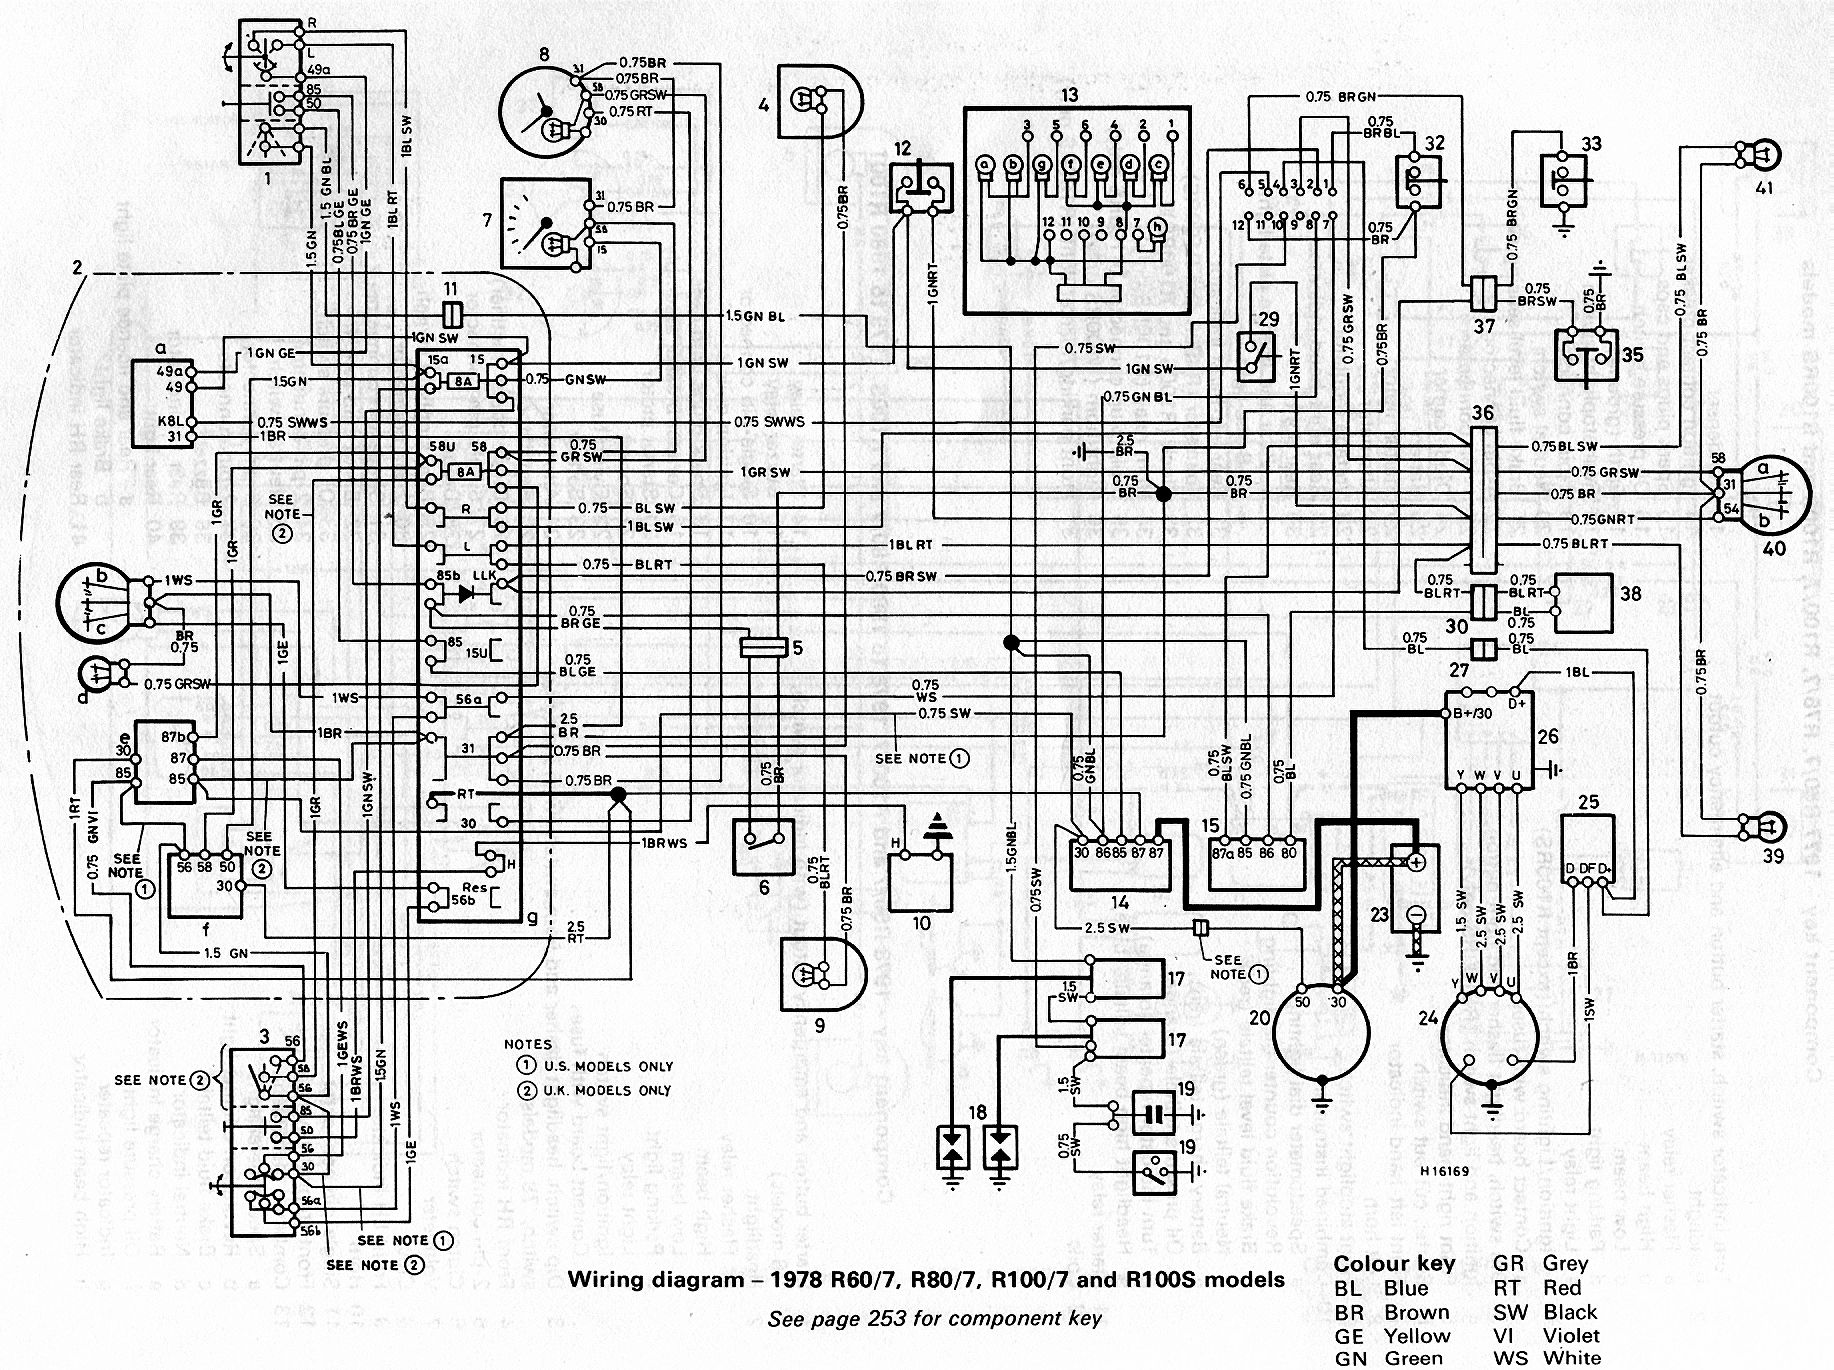 bmw r100 wiring diagram